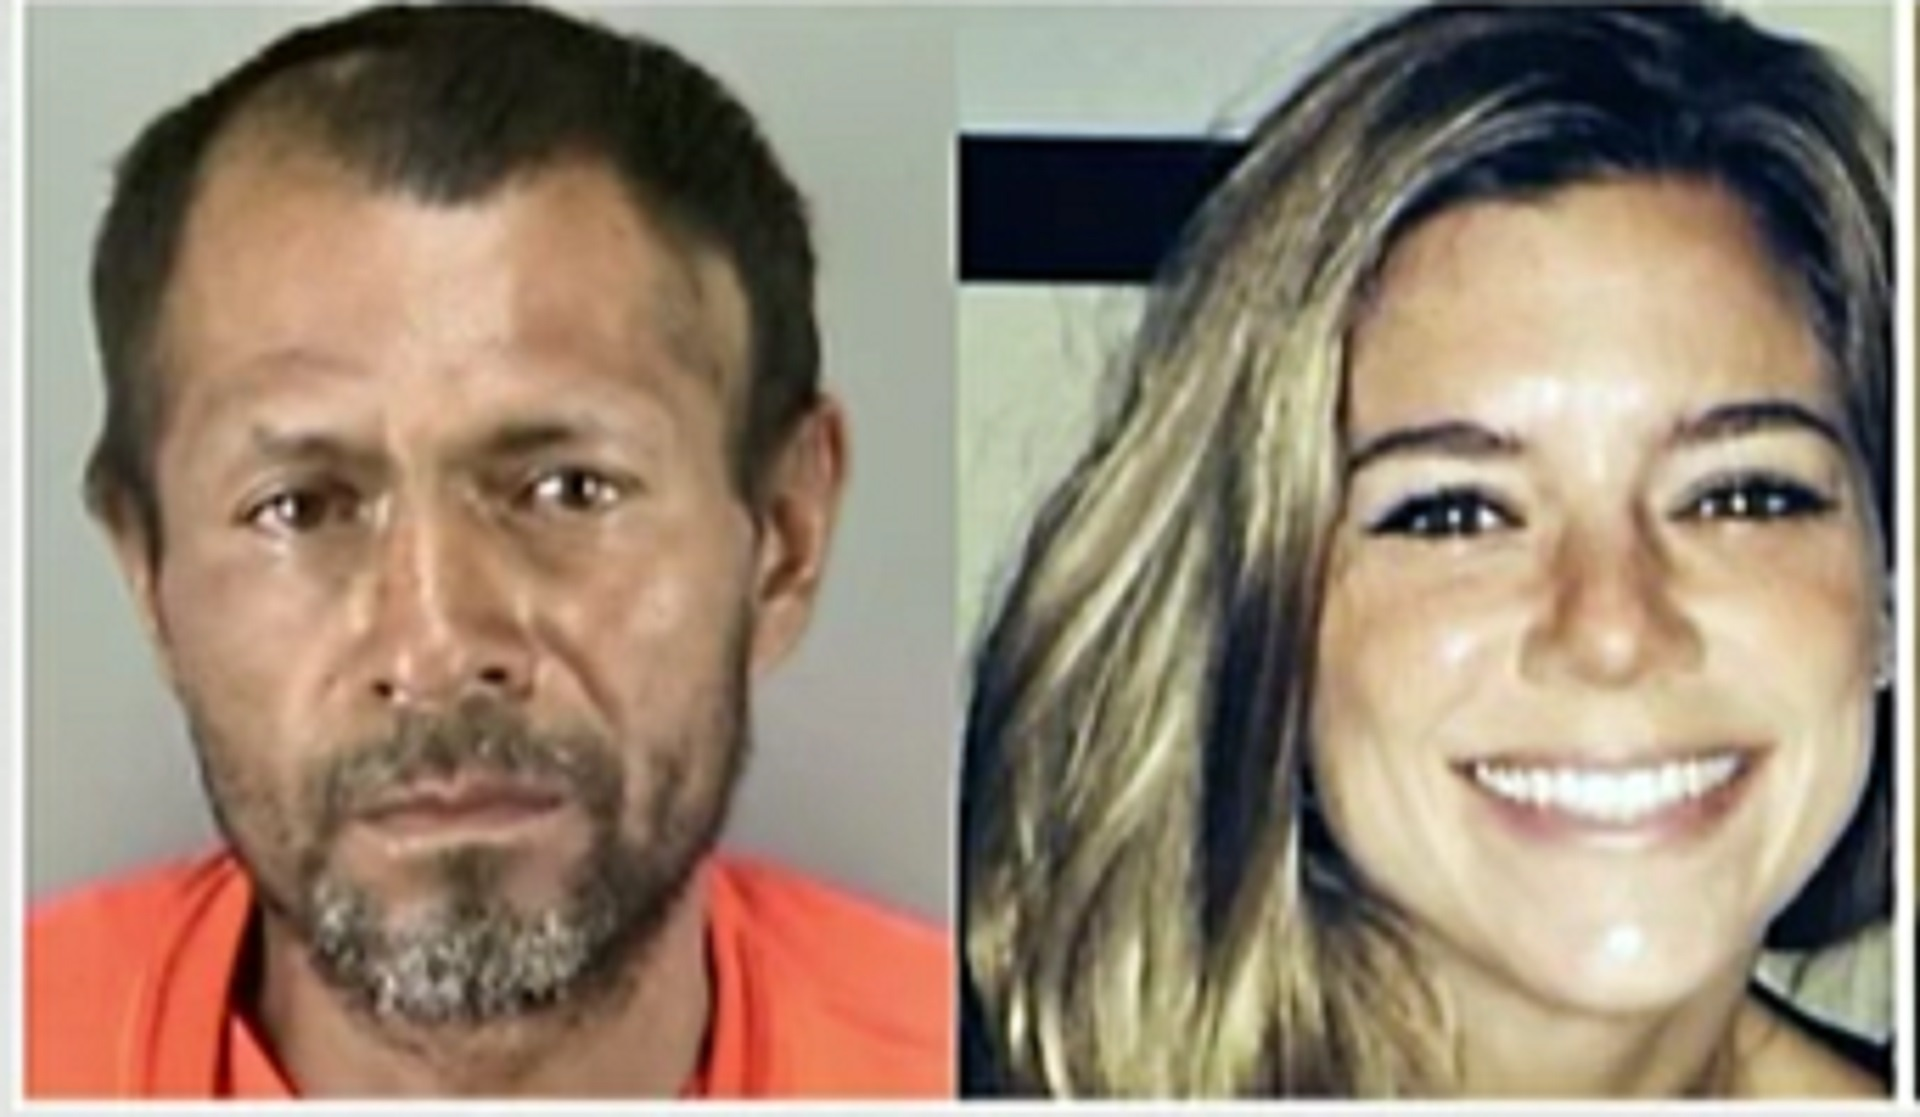 Ana Kasparian Nose Job court reverses sole conviction in the death of kate steinle